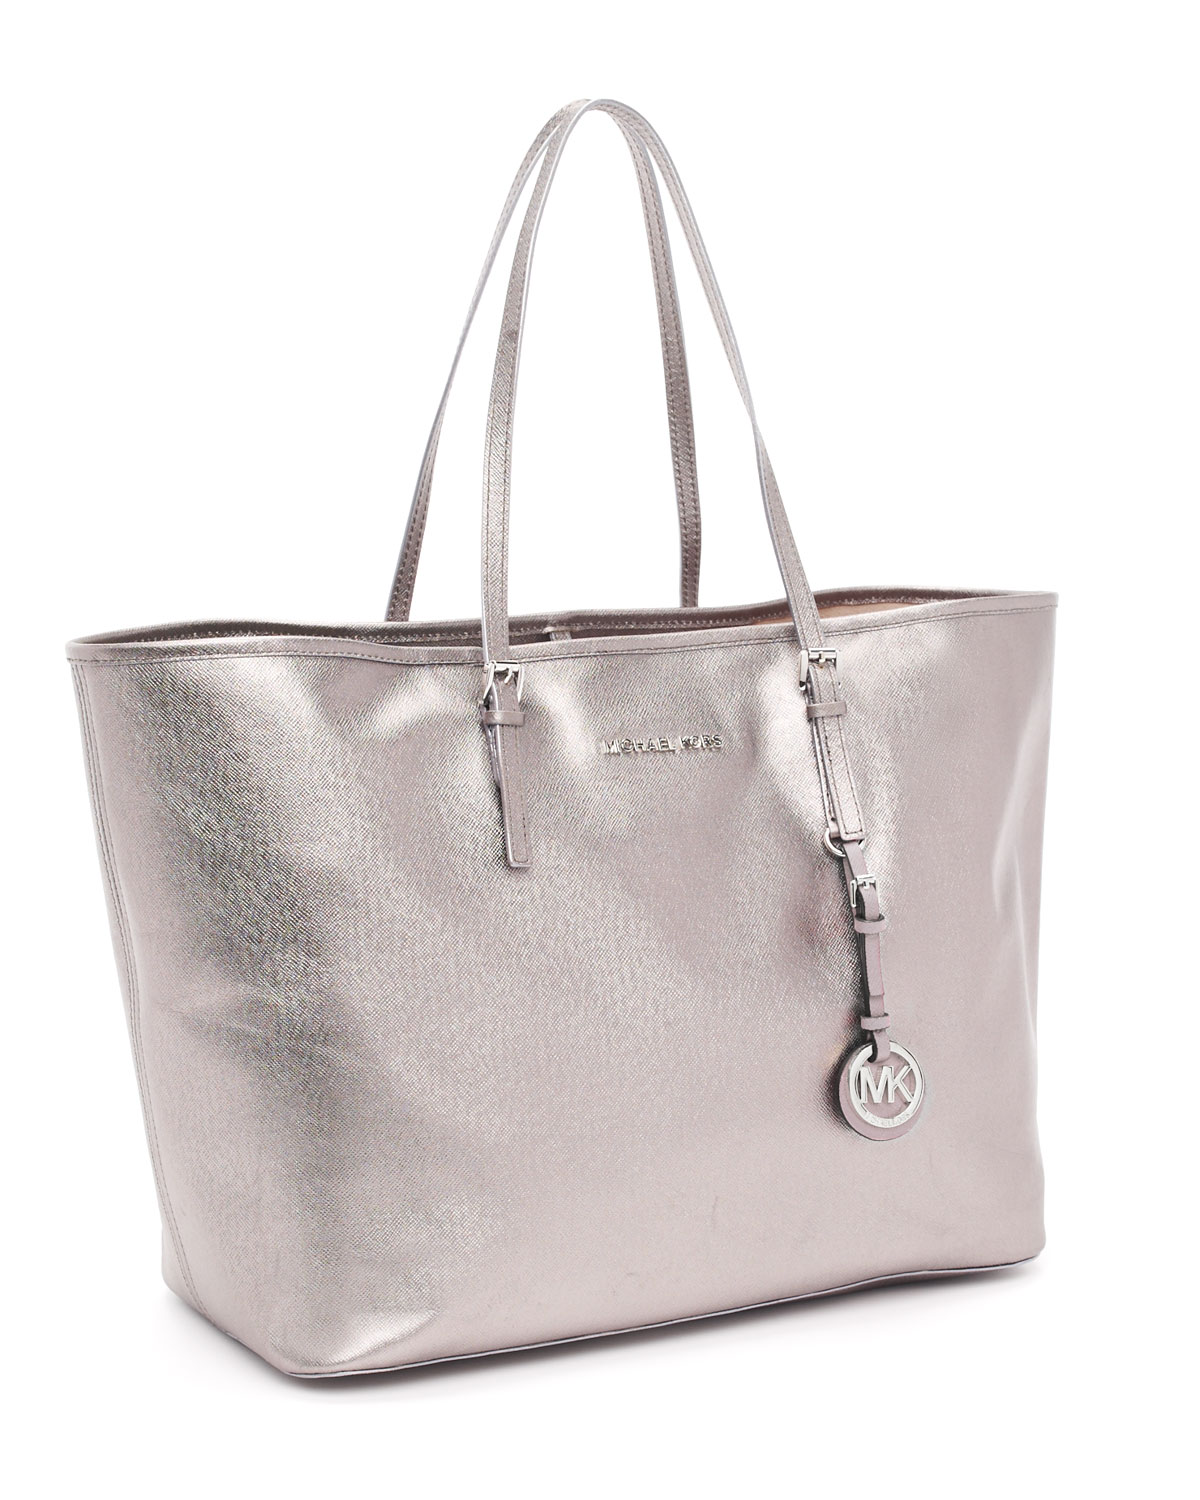 787a4269e42498 ... usa lyst michael michael kors medium jet set travel tote in metallic  e0510 cd8ff